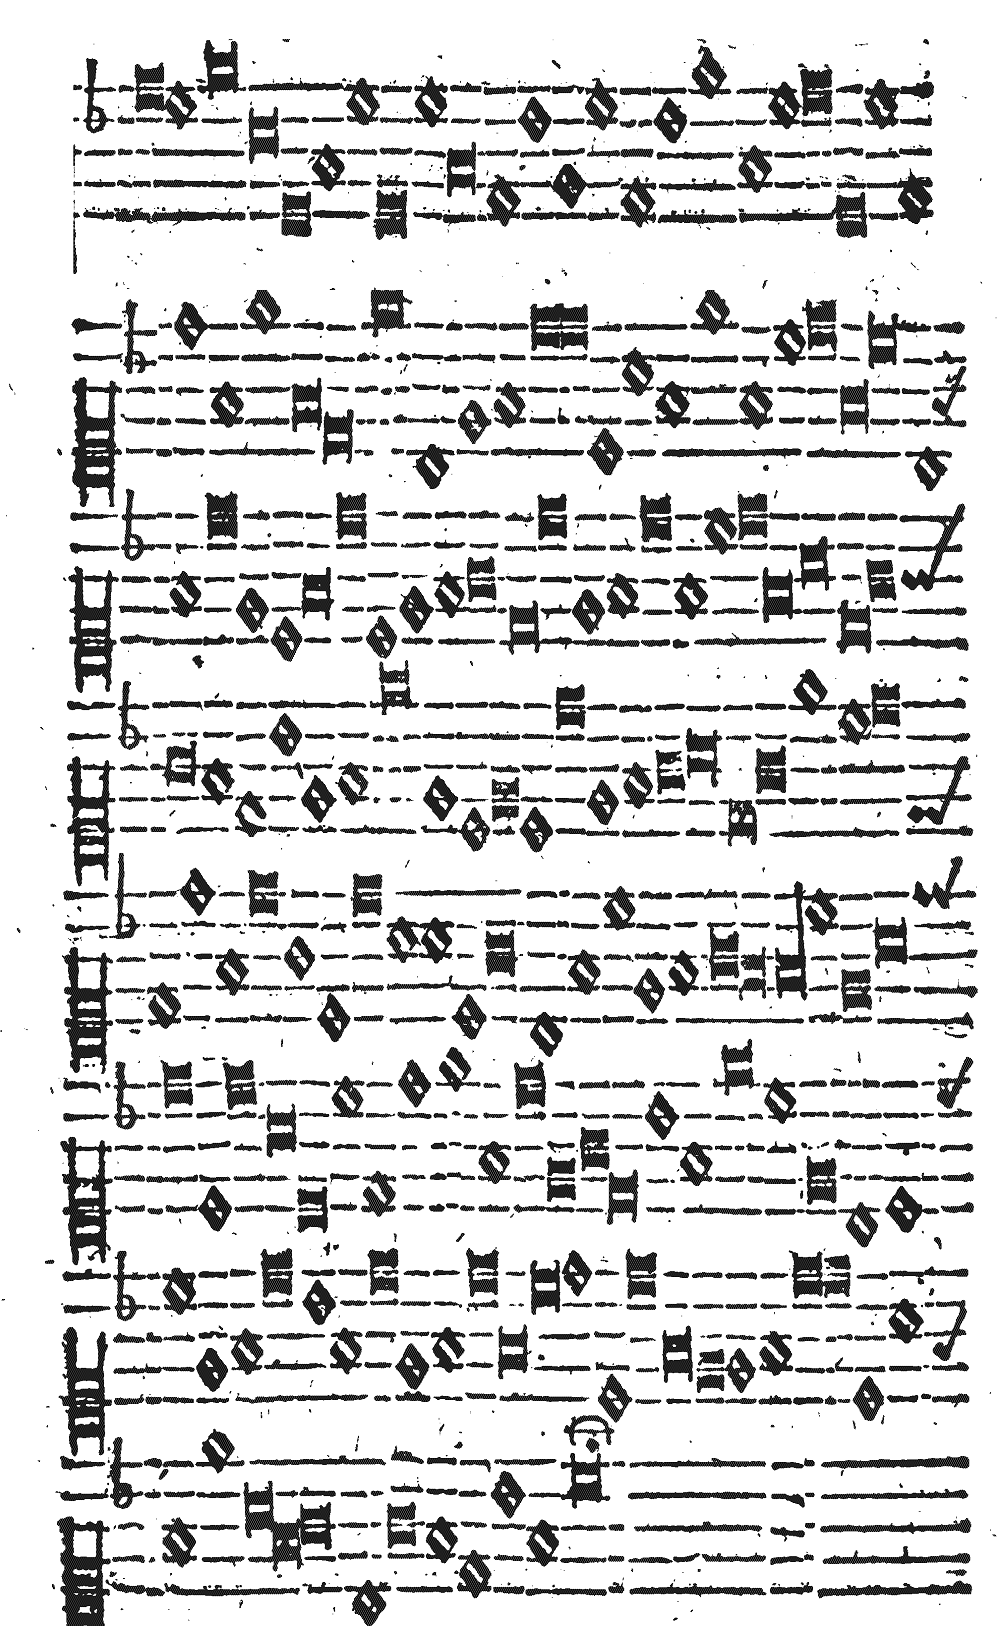 Schwendter-music-ciphertext